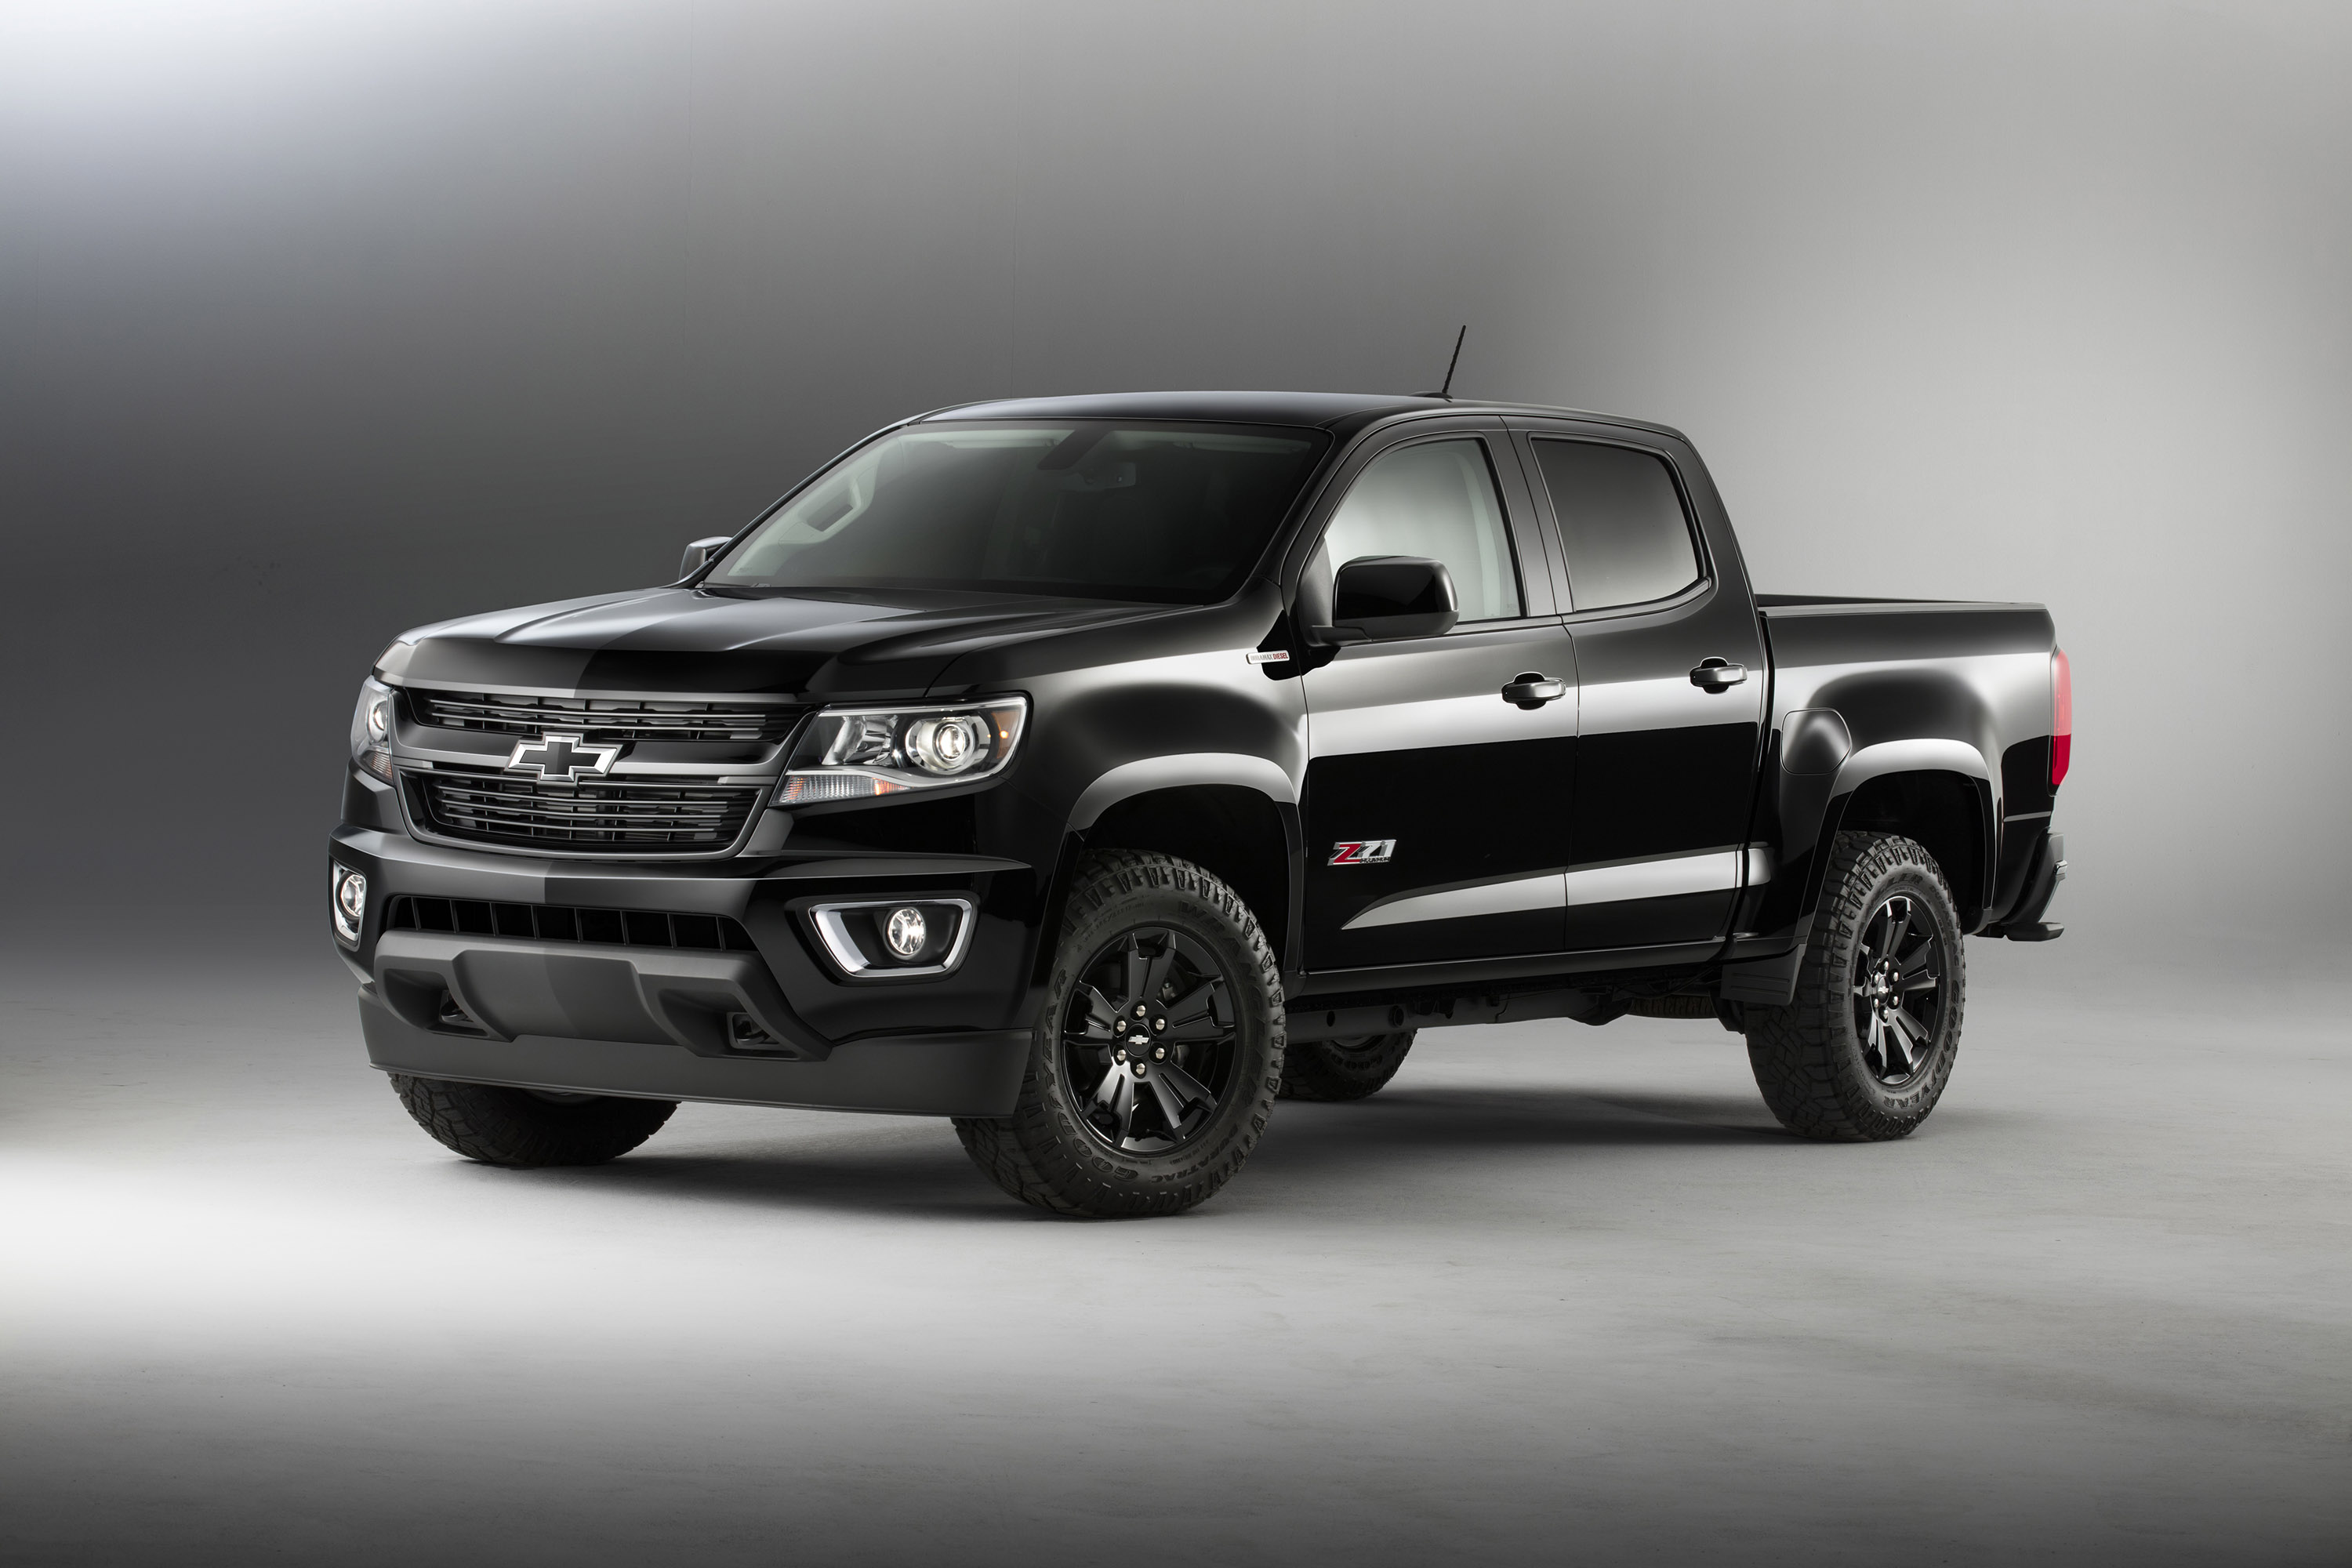 chevrolet reveals silverado 1500 z71 and colorado z71 midnight special editions. Black Bedroom Furniture Sets. Home Design Ideas